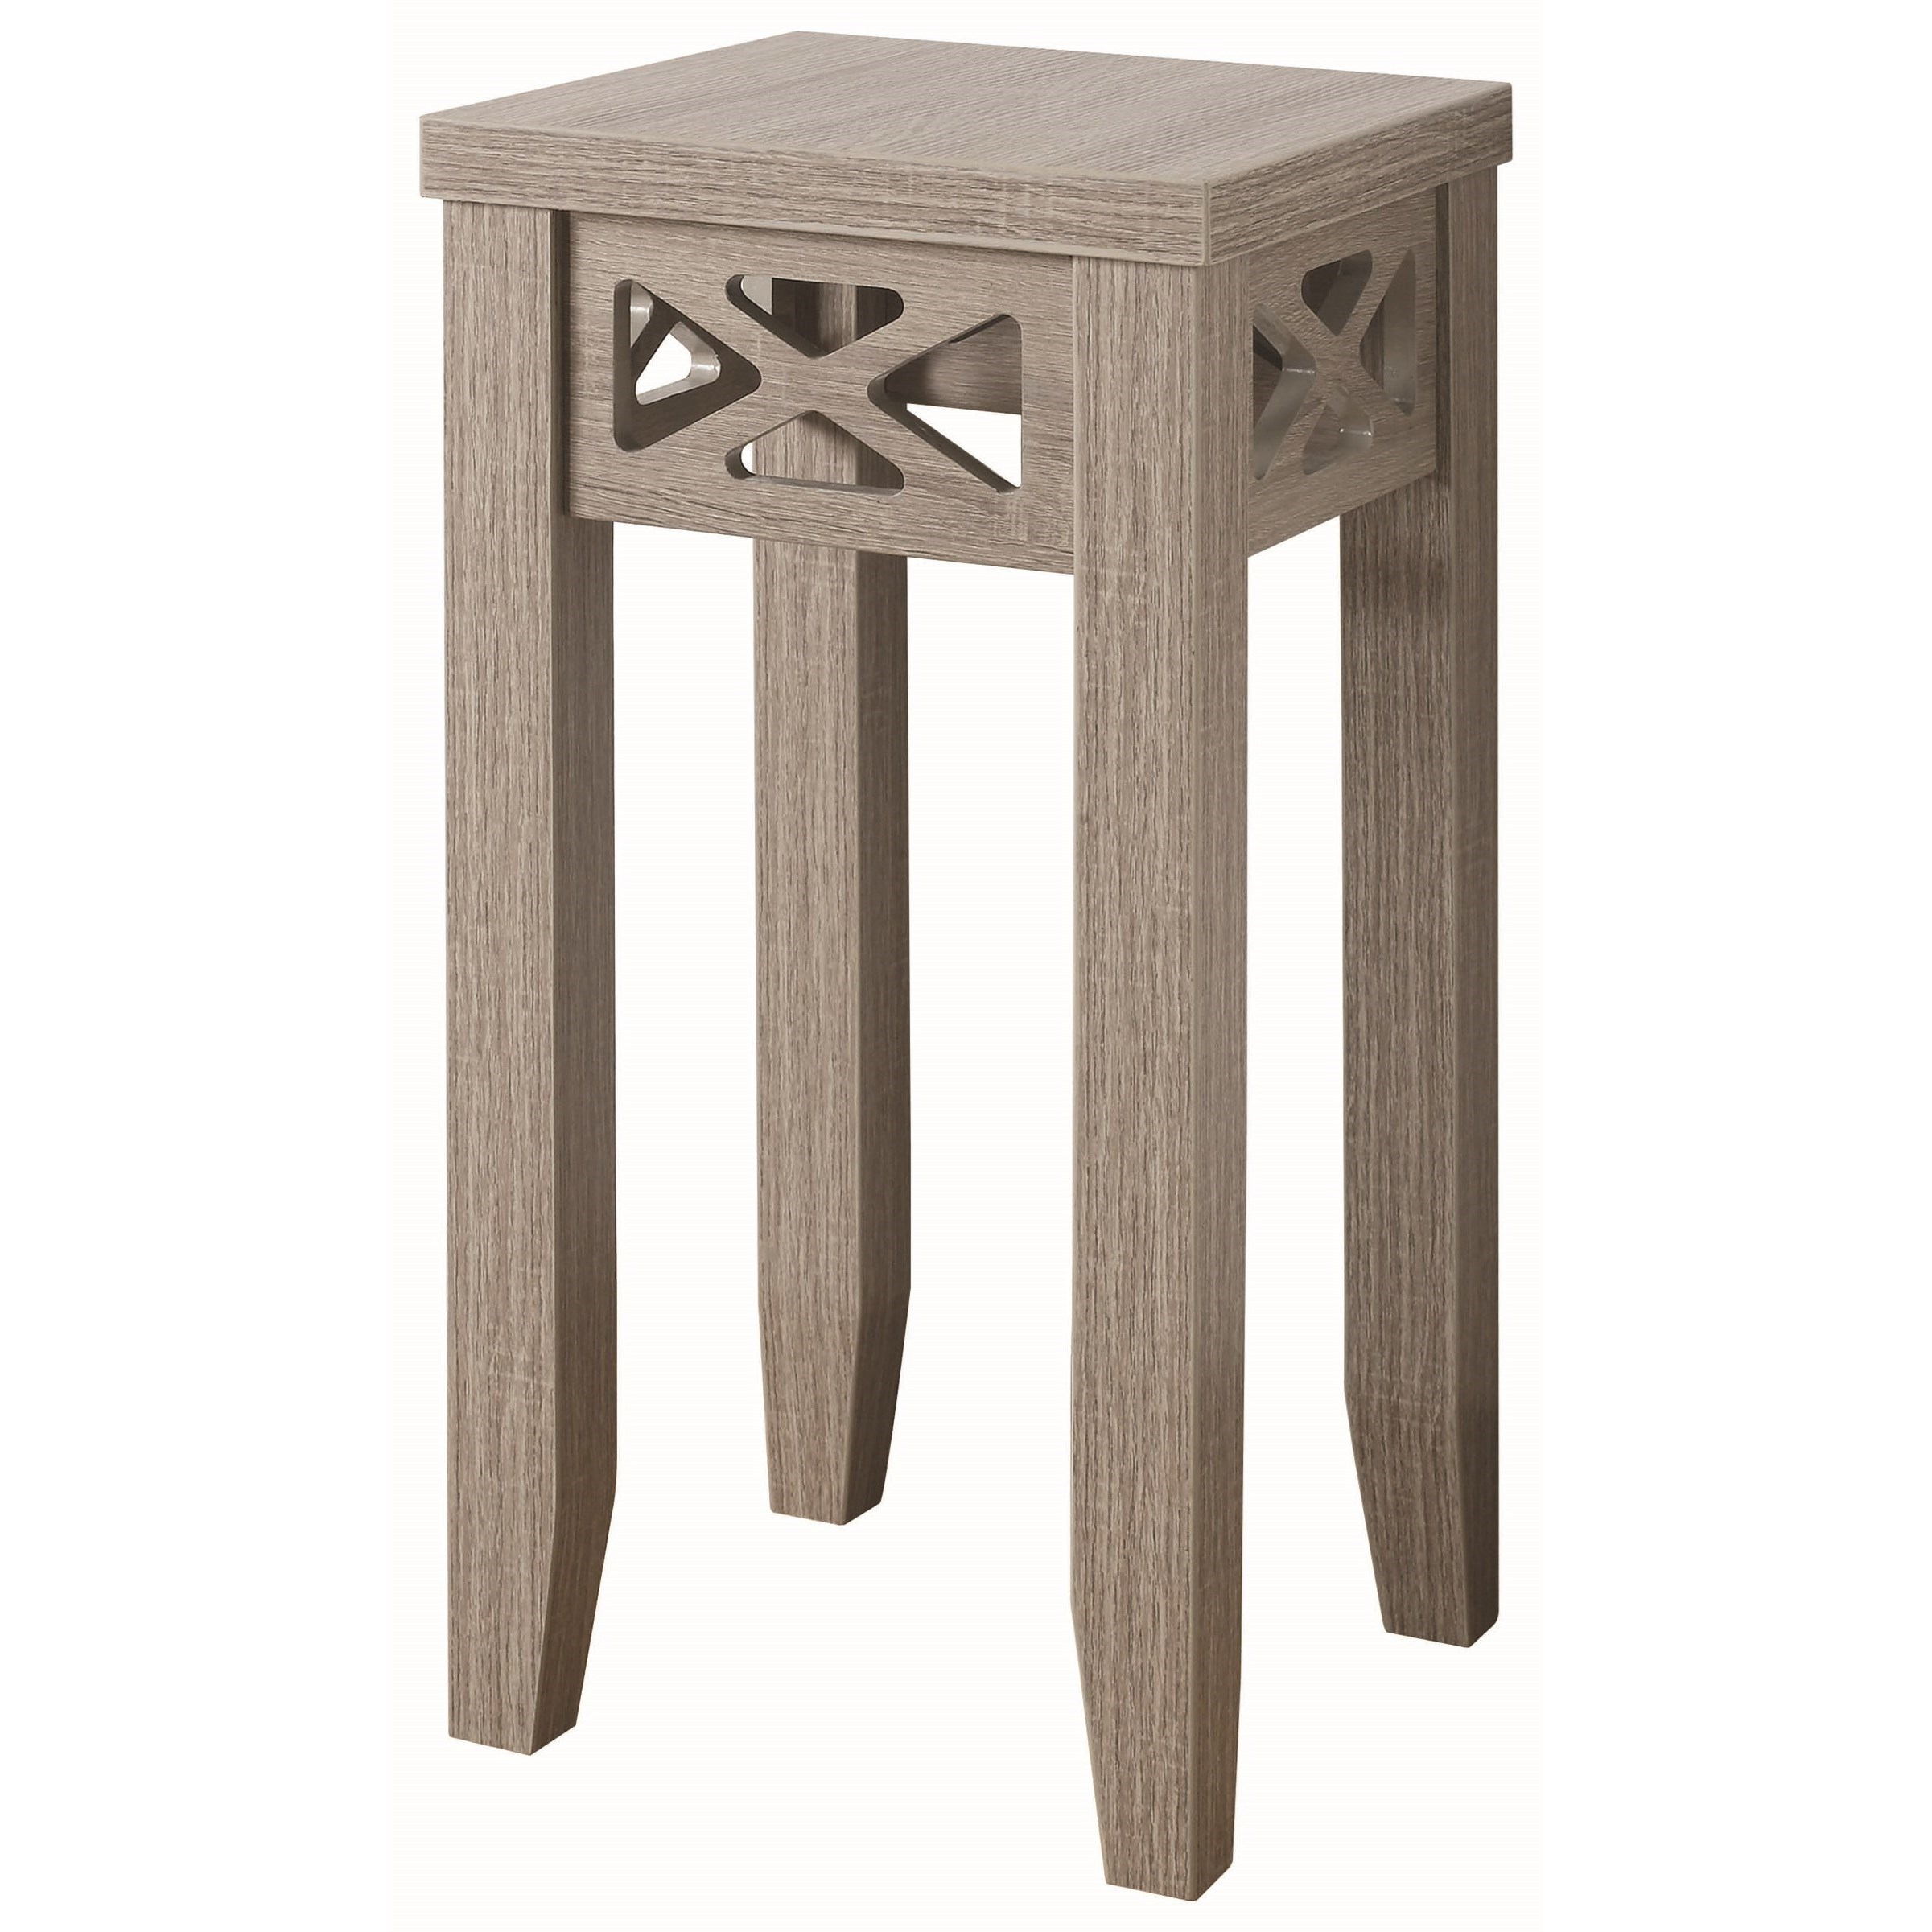 Coaster Accent Tables Accent Table - Item Number: 930012